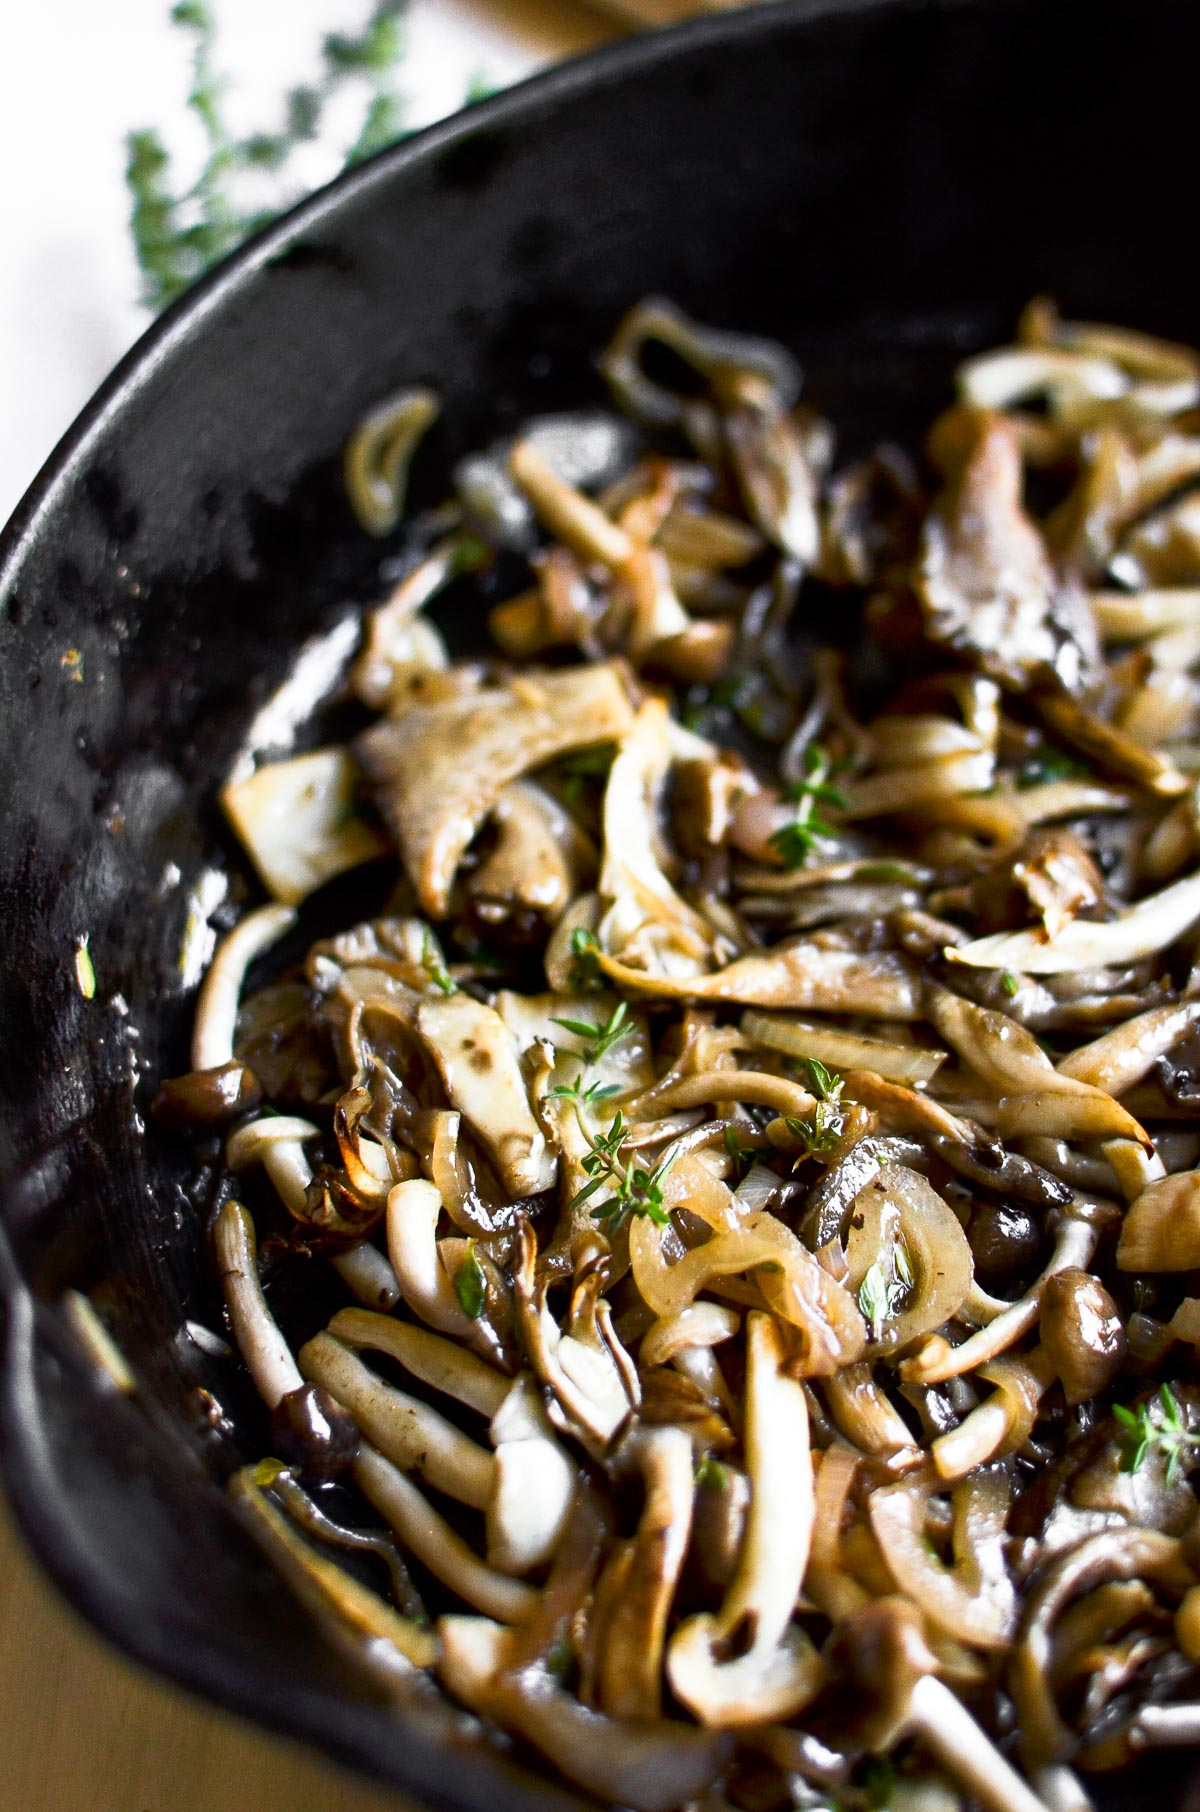 wild mushrooms for baked brie